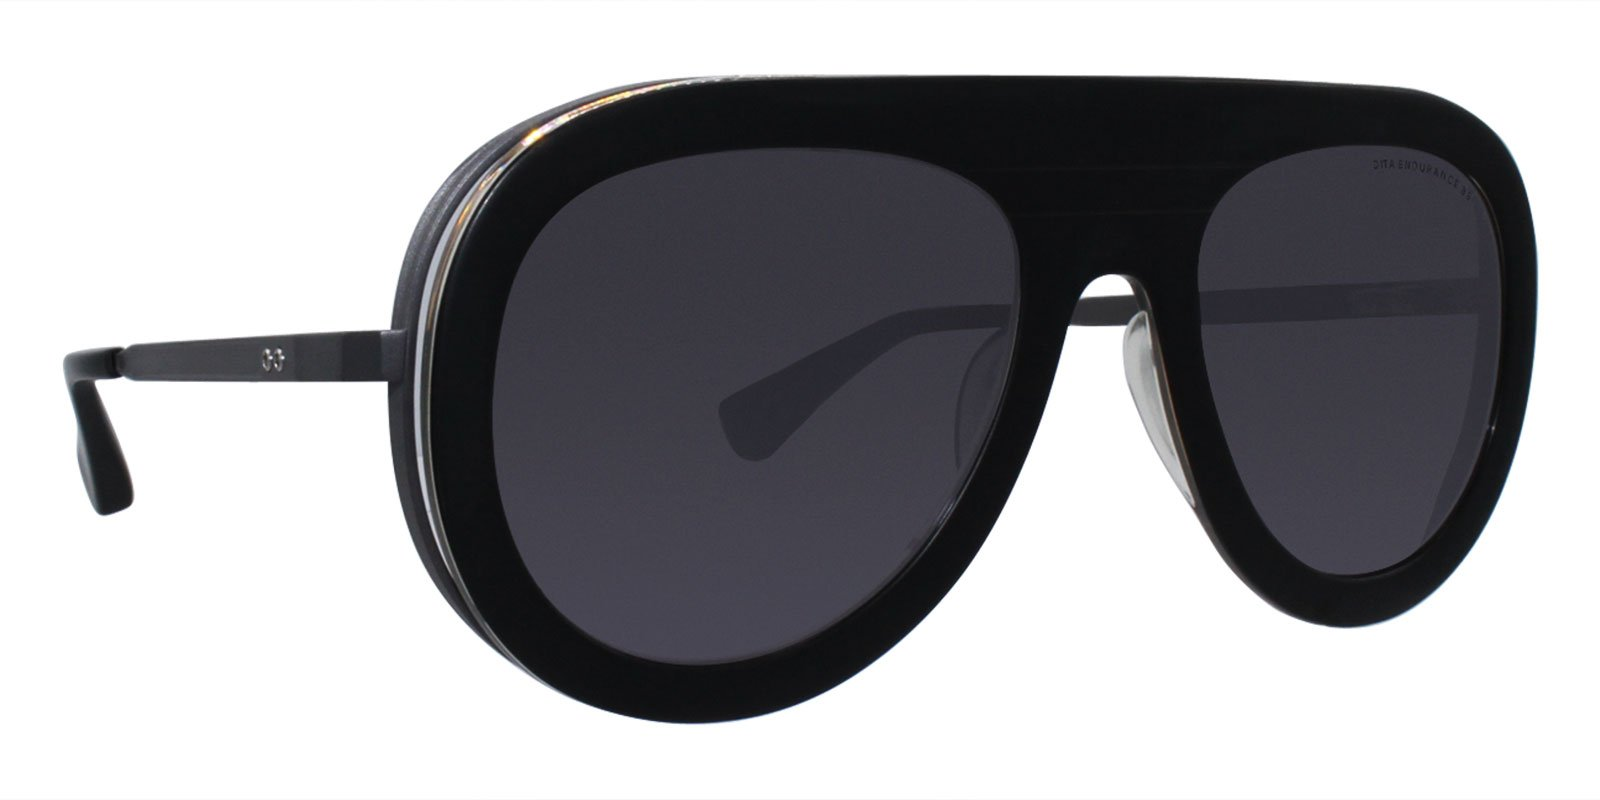 Dita - Endurance 88 Black Oval Unisex Sunglasses - 55mm-Sunglasses-Designer Eyes